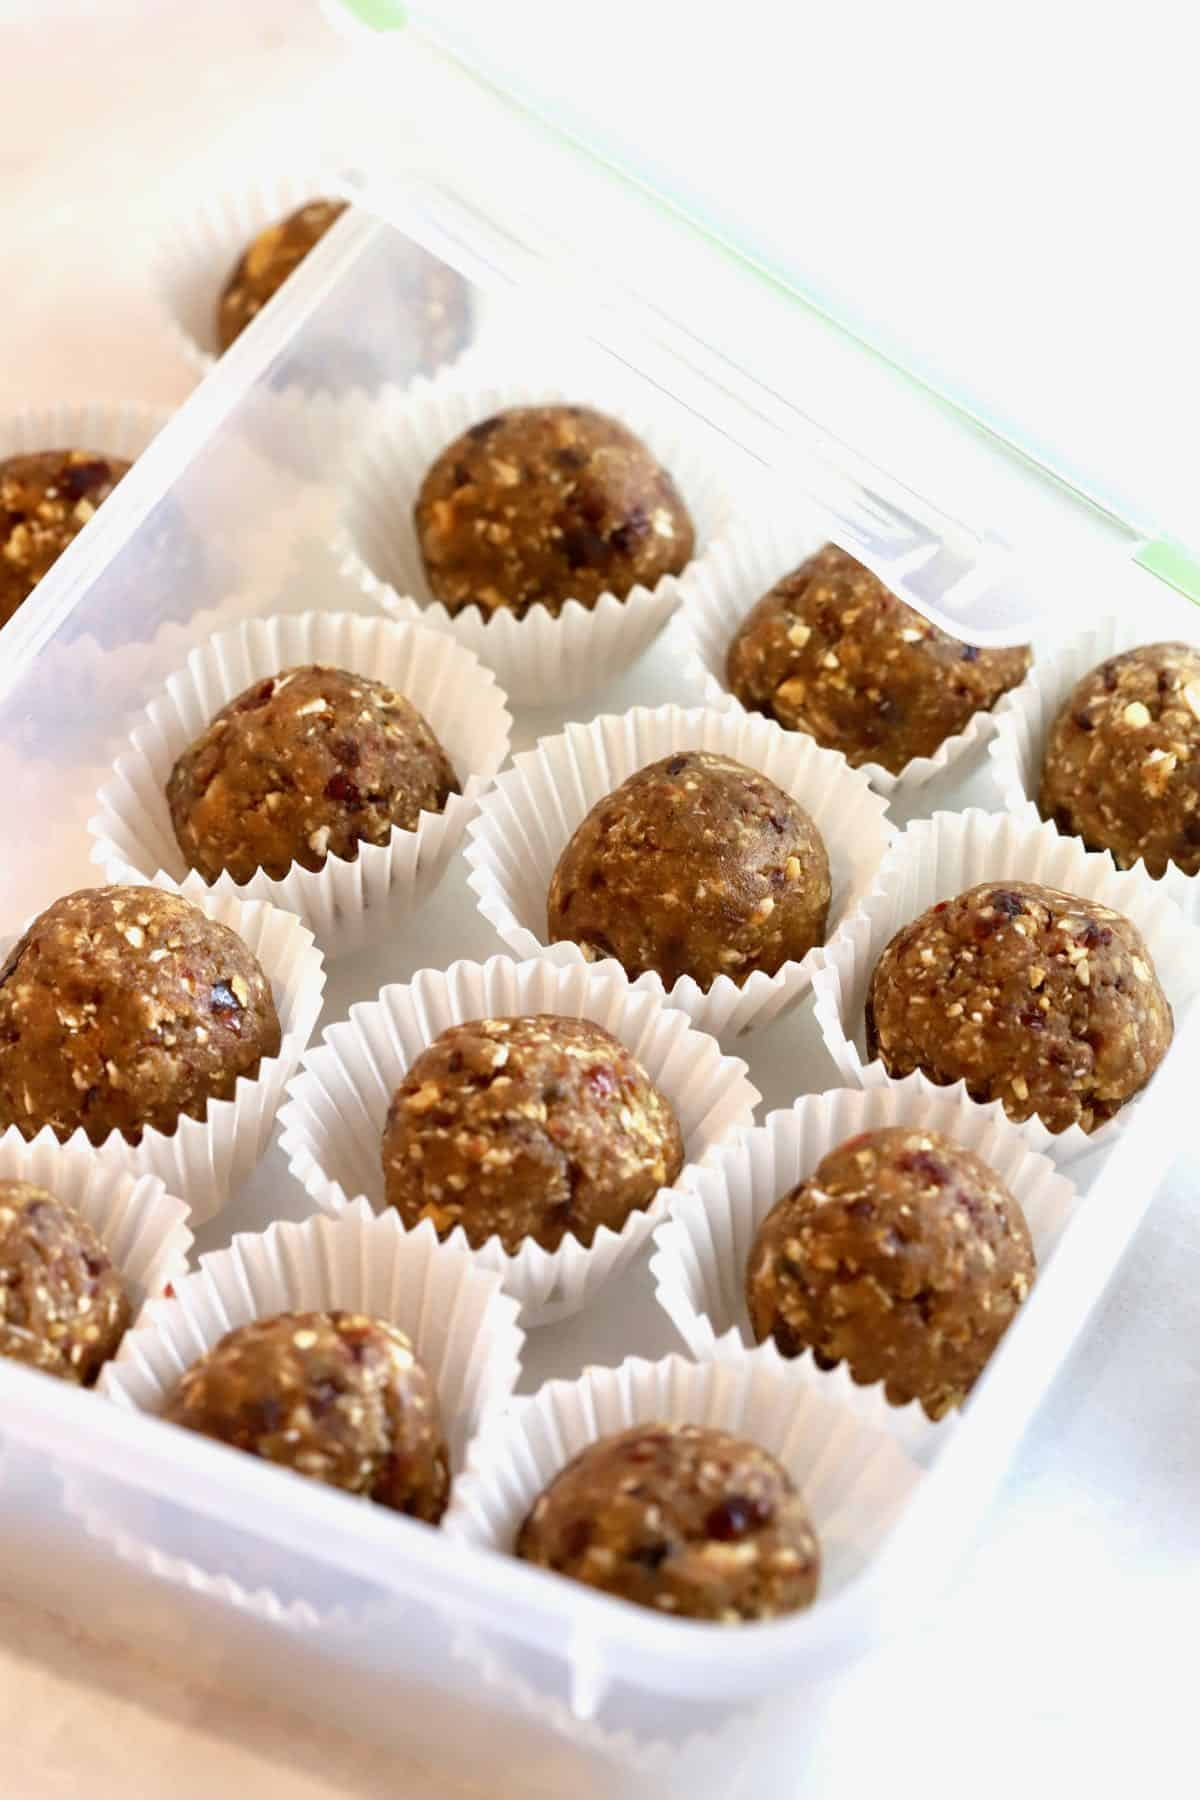 A plastic storage box full of the oatmeal energy balls in muffin liners.